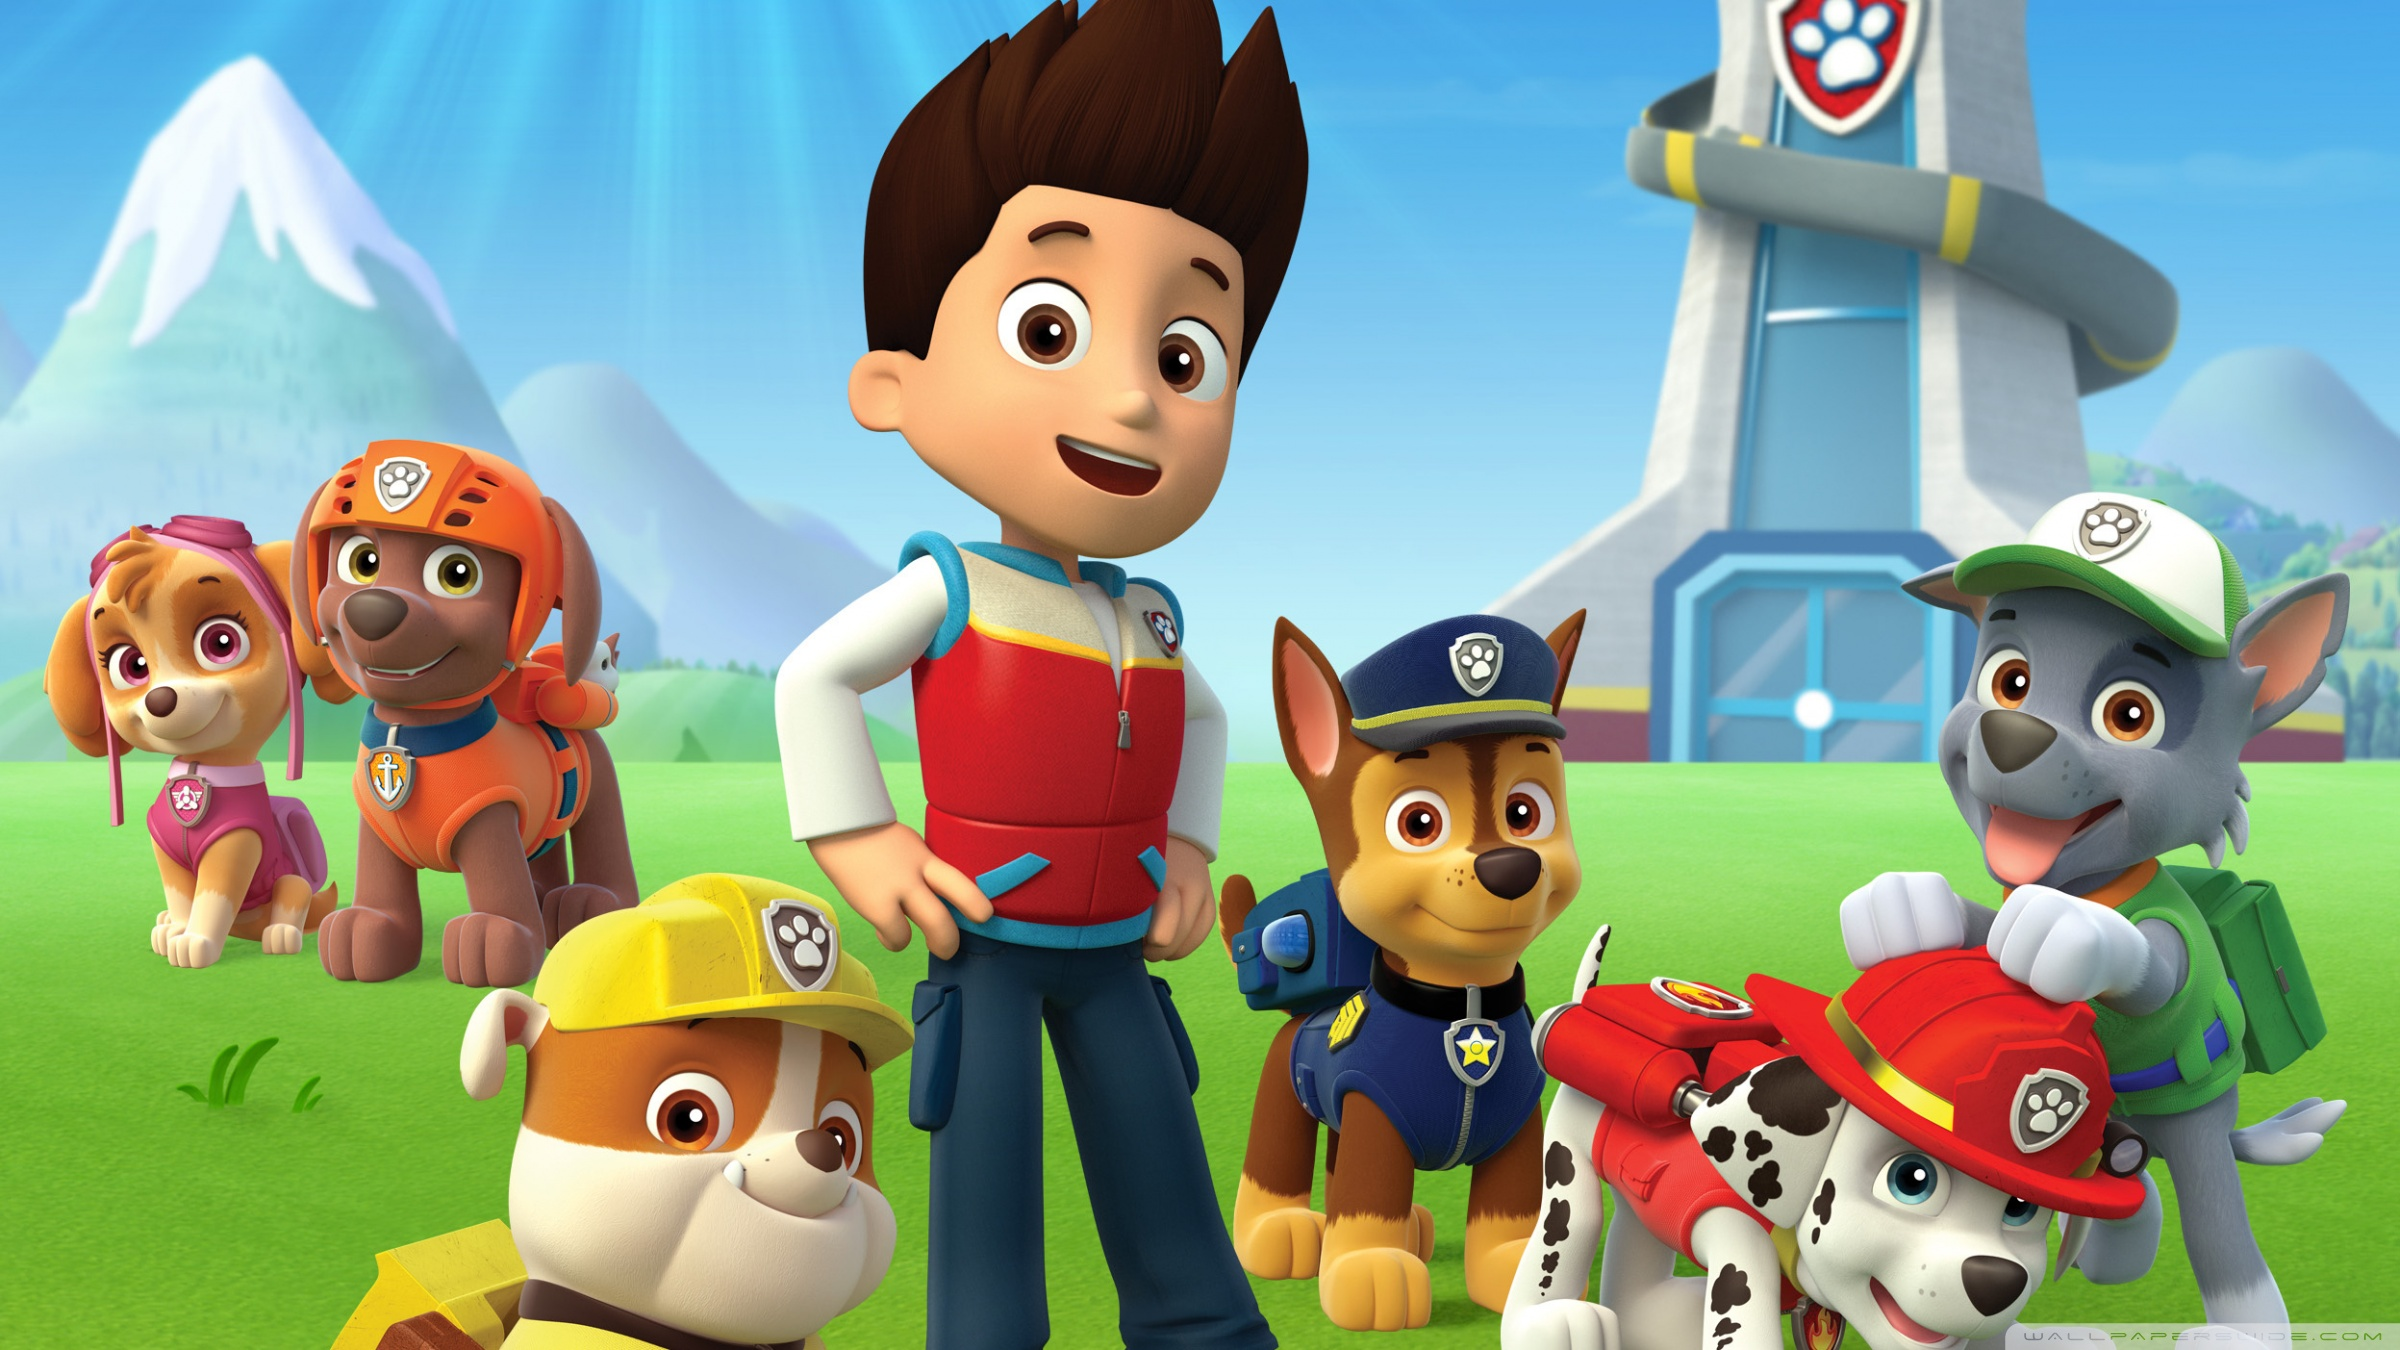 Free Paw Patrol Wallpaper